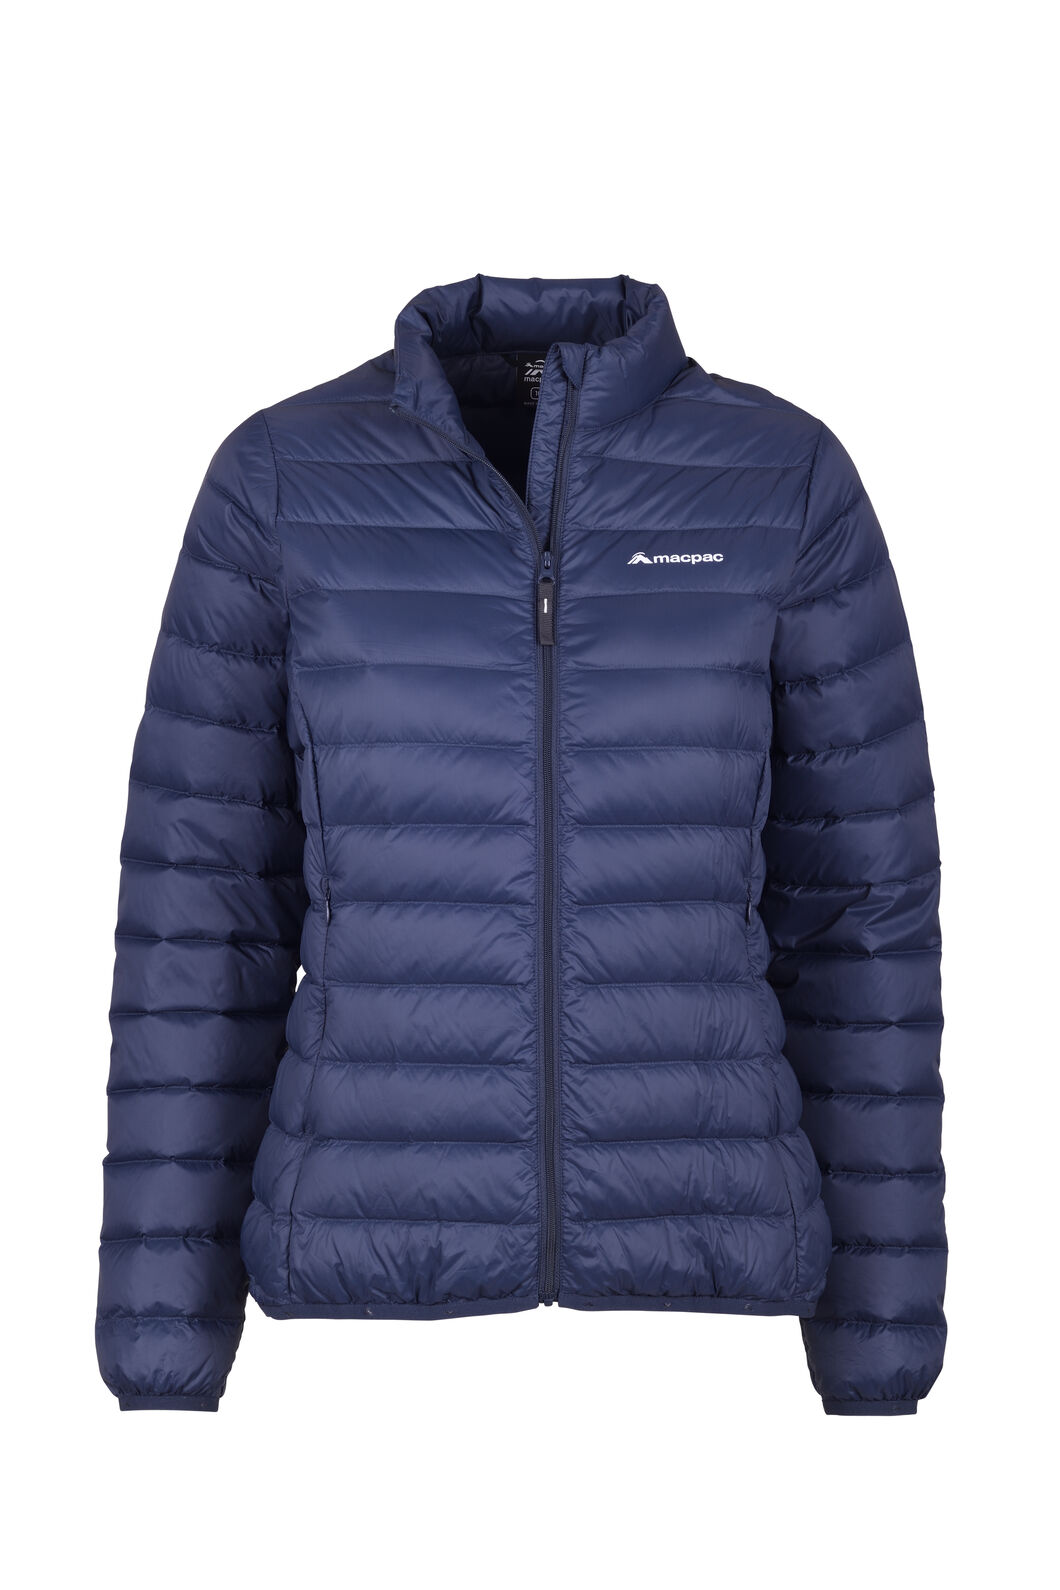 Macpac Uber Light Down Jacket - Women's, Mood Indigo, hi-res